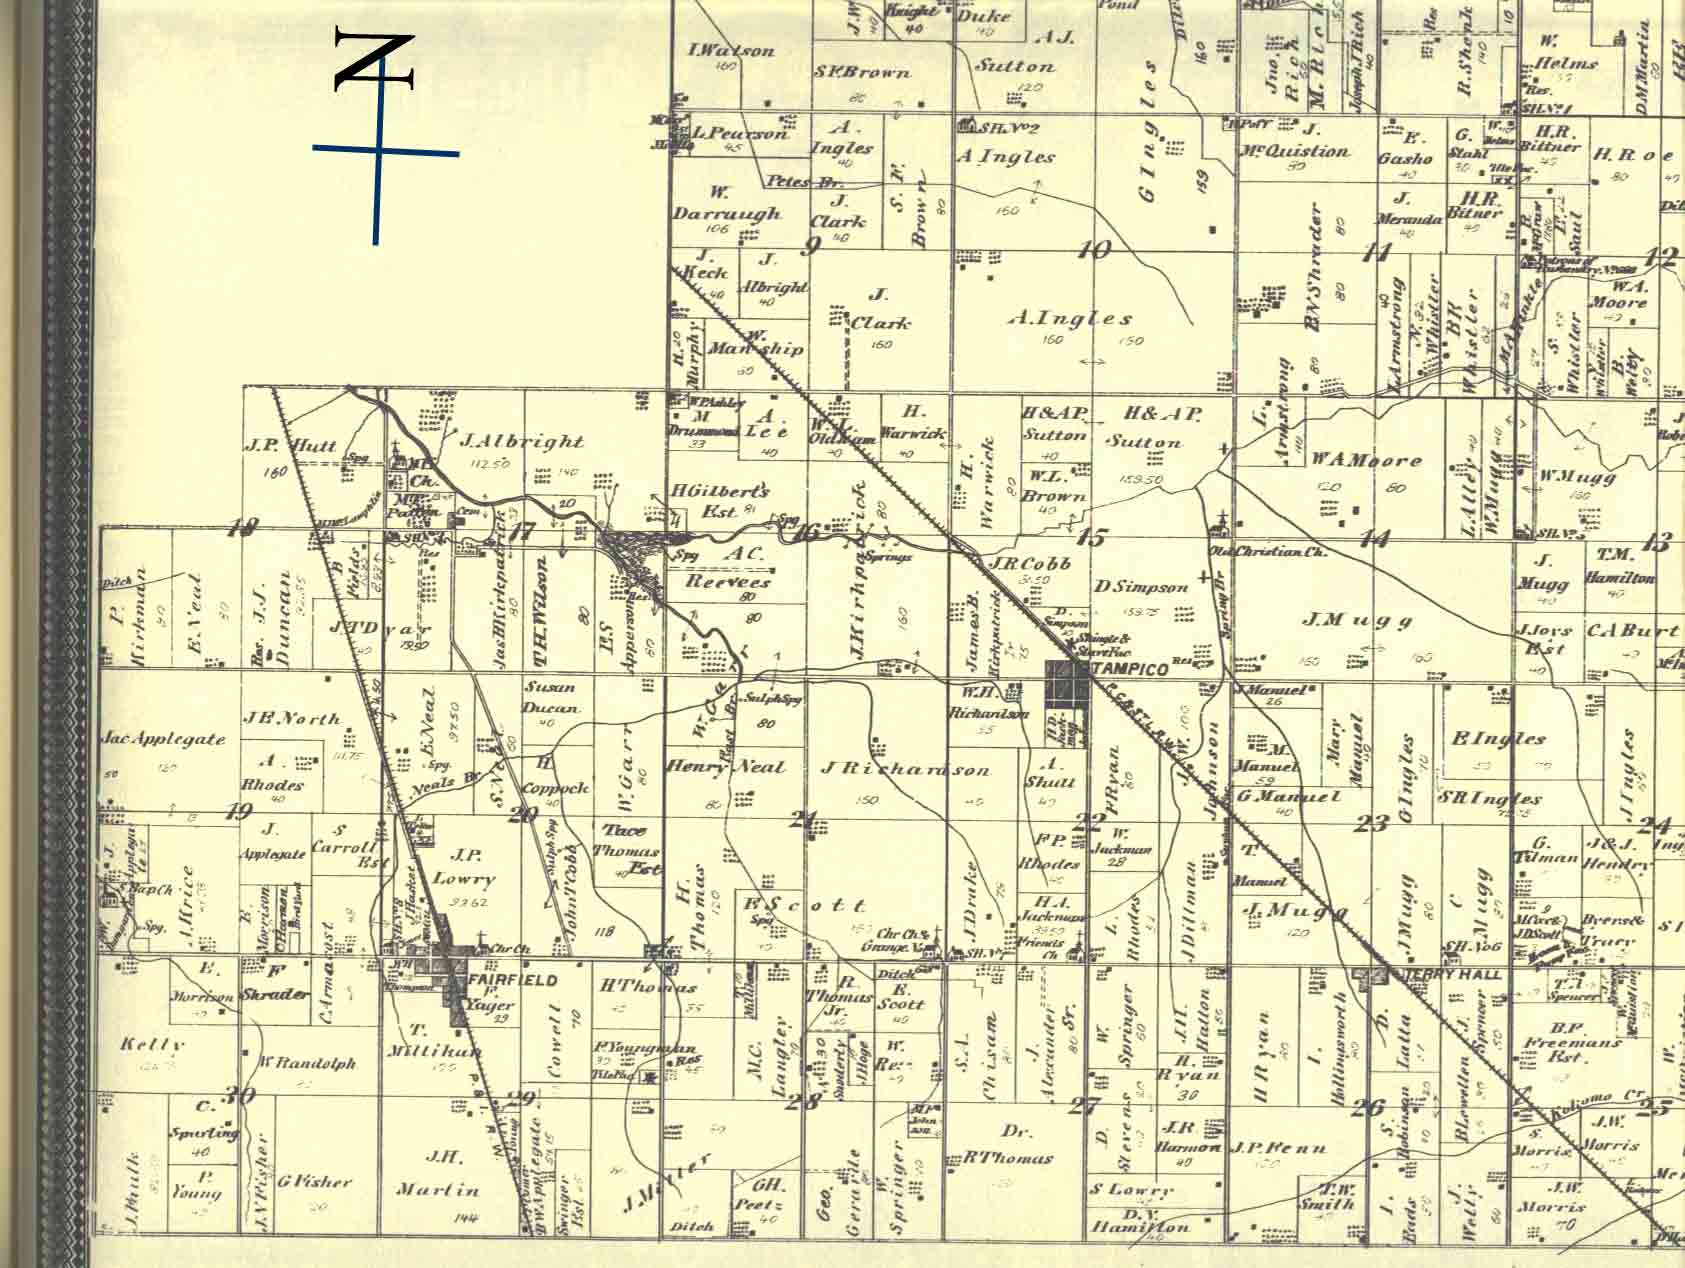 Howard County Indiana Map.The Other Fairfield